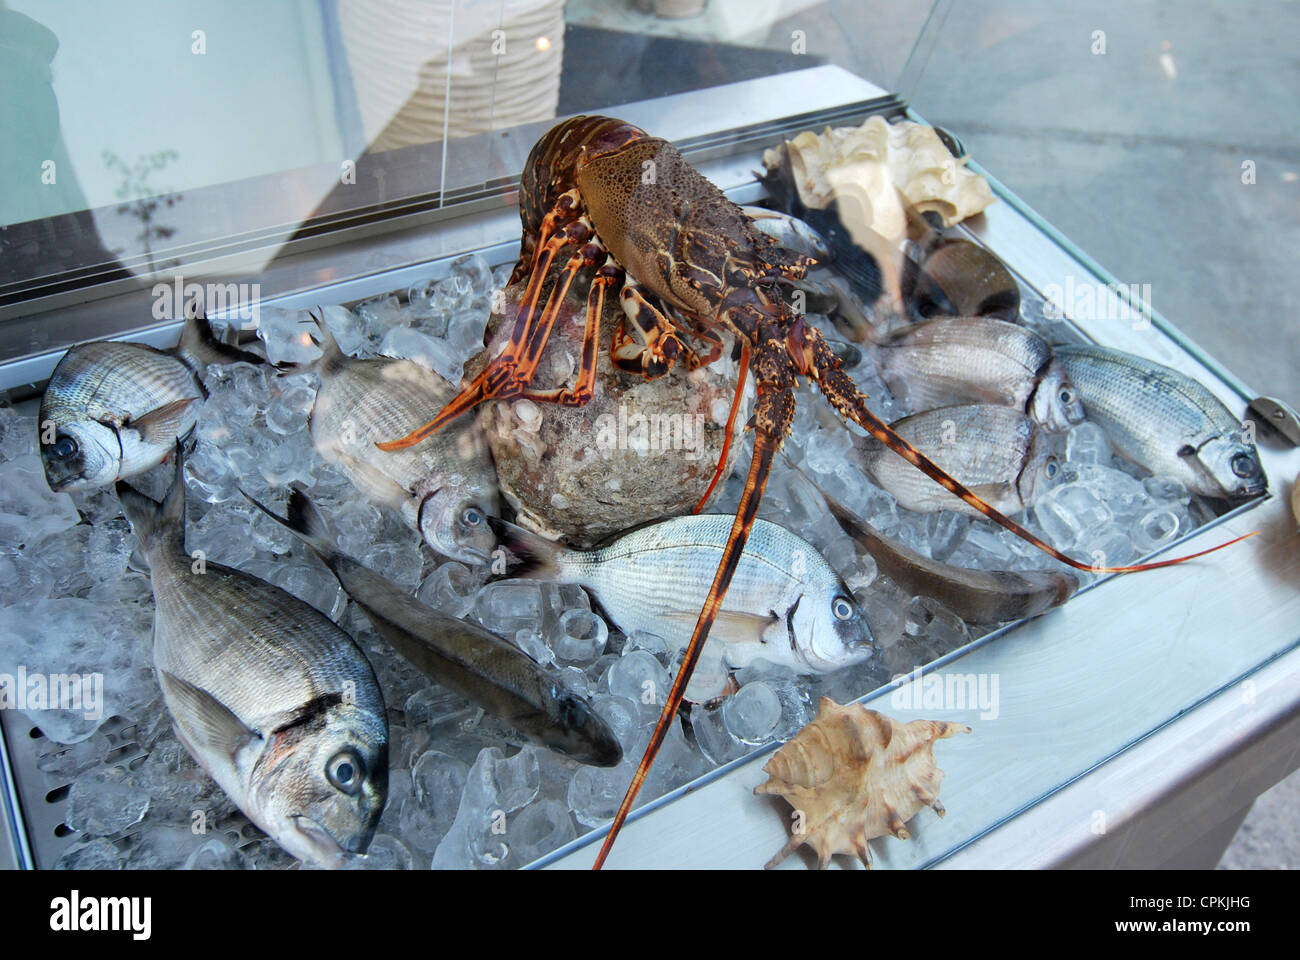 Fresh fish and Lobster in a refrigerator, greece. - Stock Image